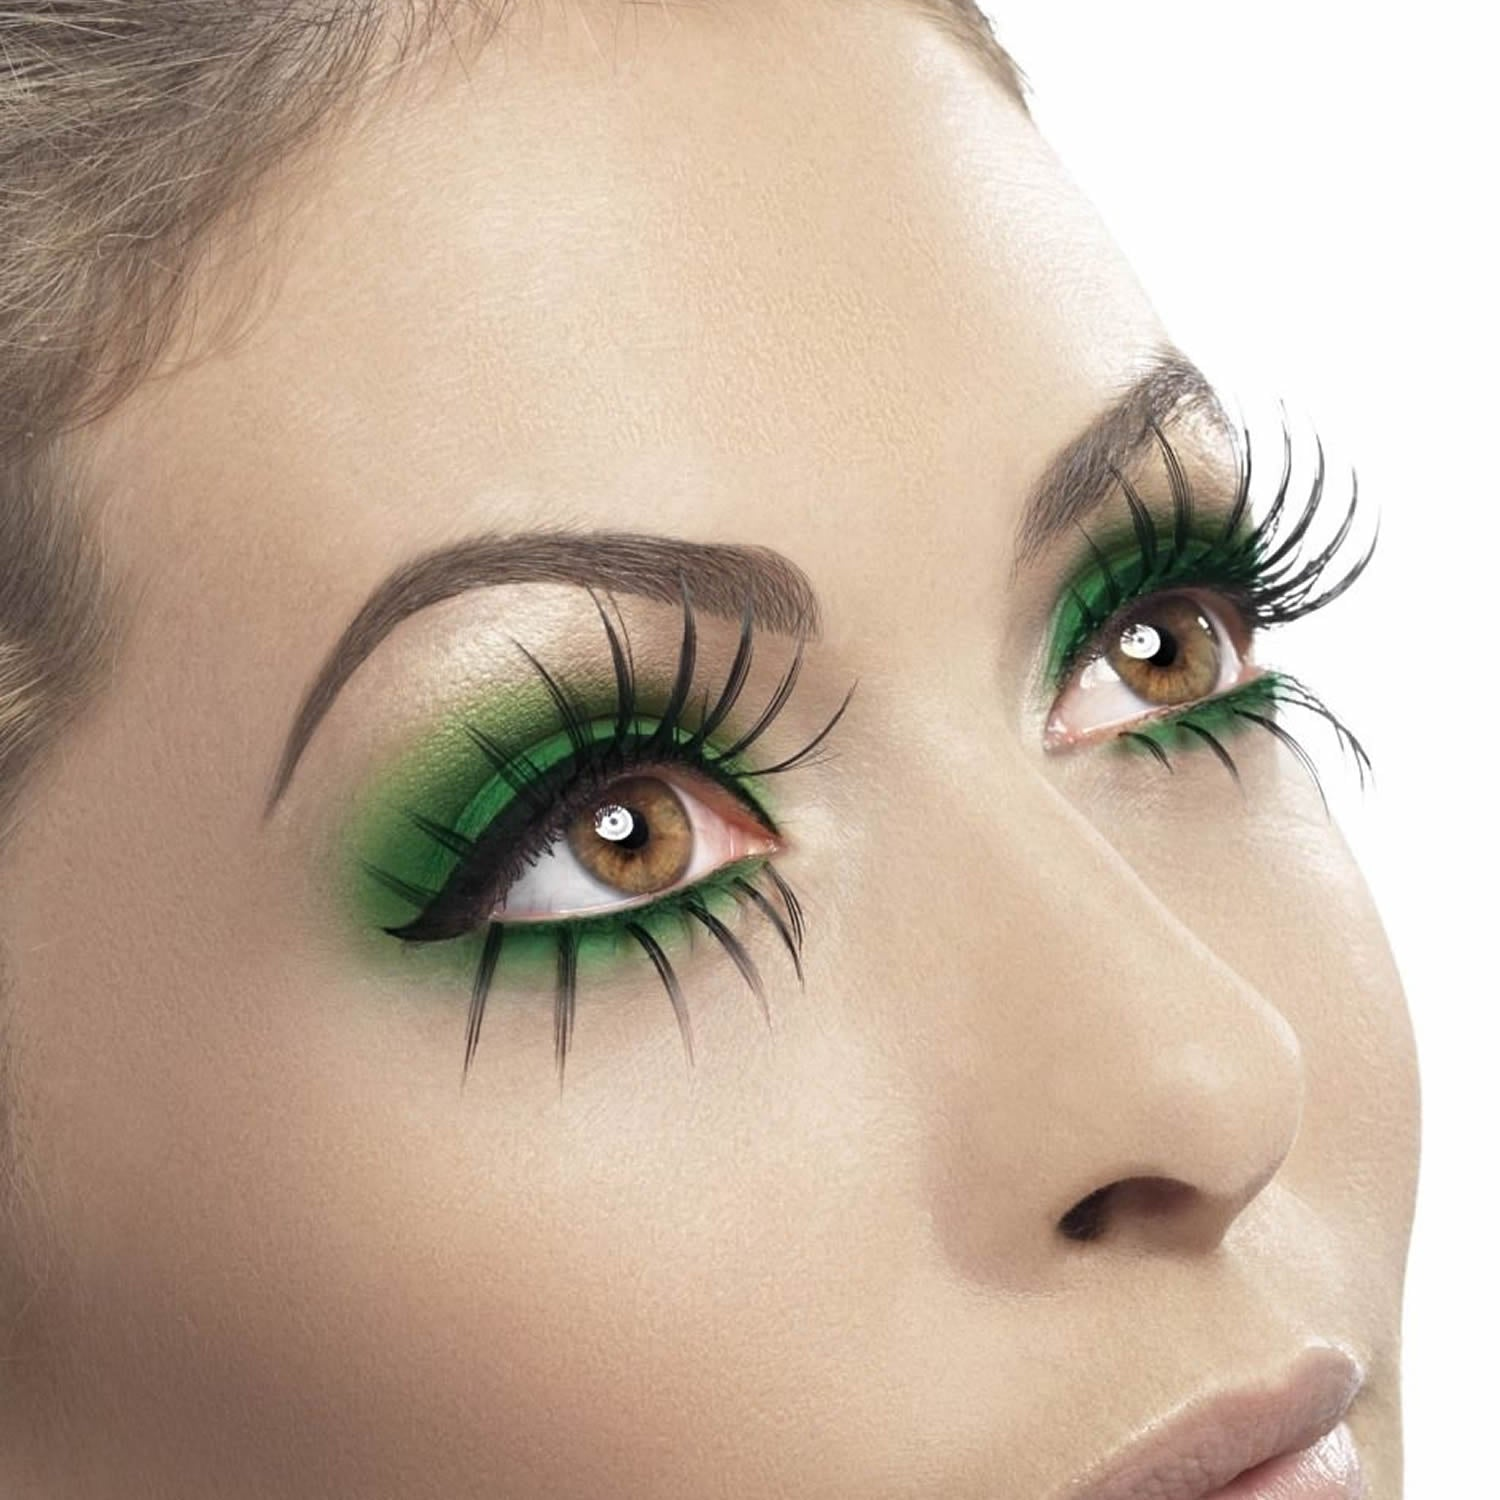 Fever False Eyelashes - Long Black (Top & Bottom) - Red Carpet FX - Professional Makeup